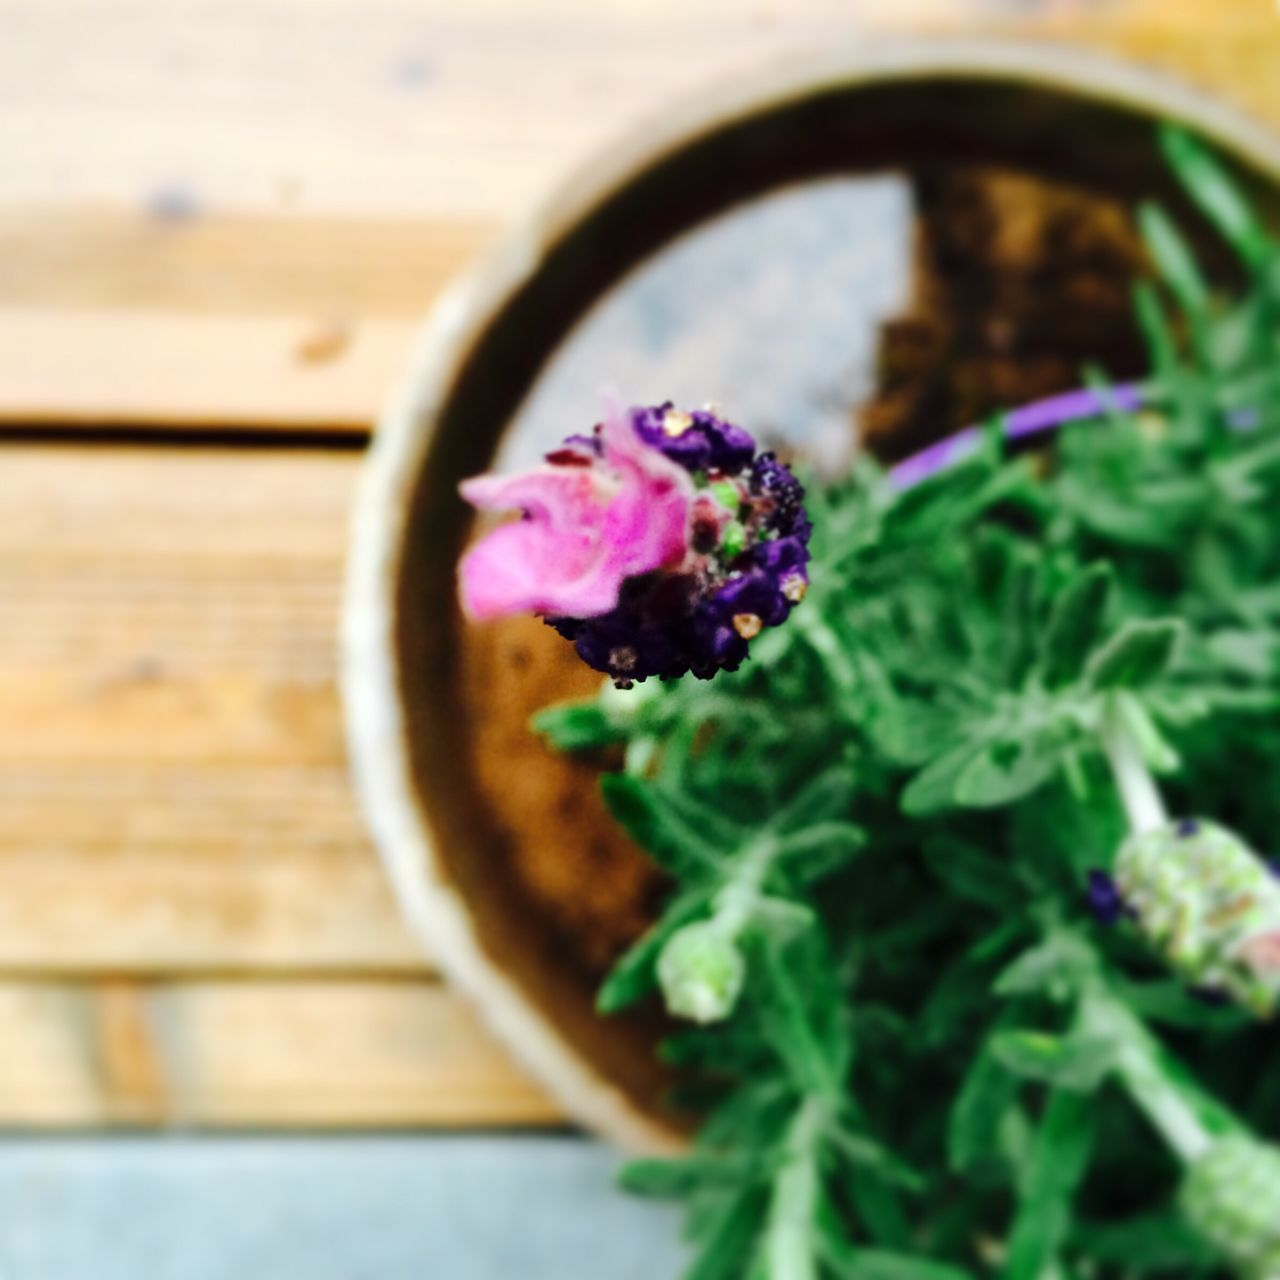 freshness, table, no people, close-up, indoors, flower, food, day